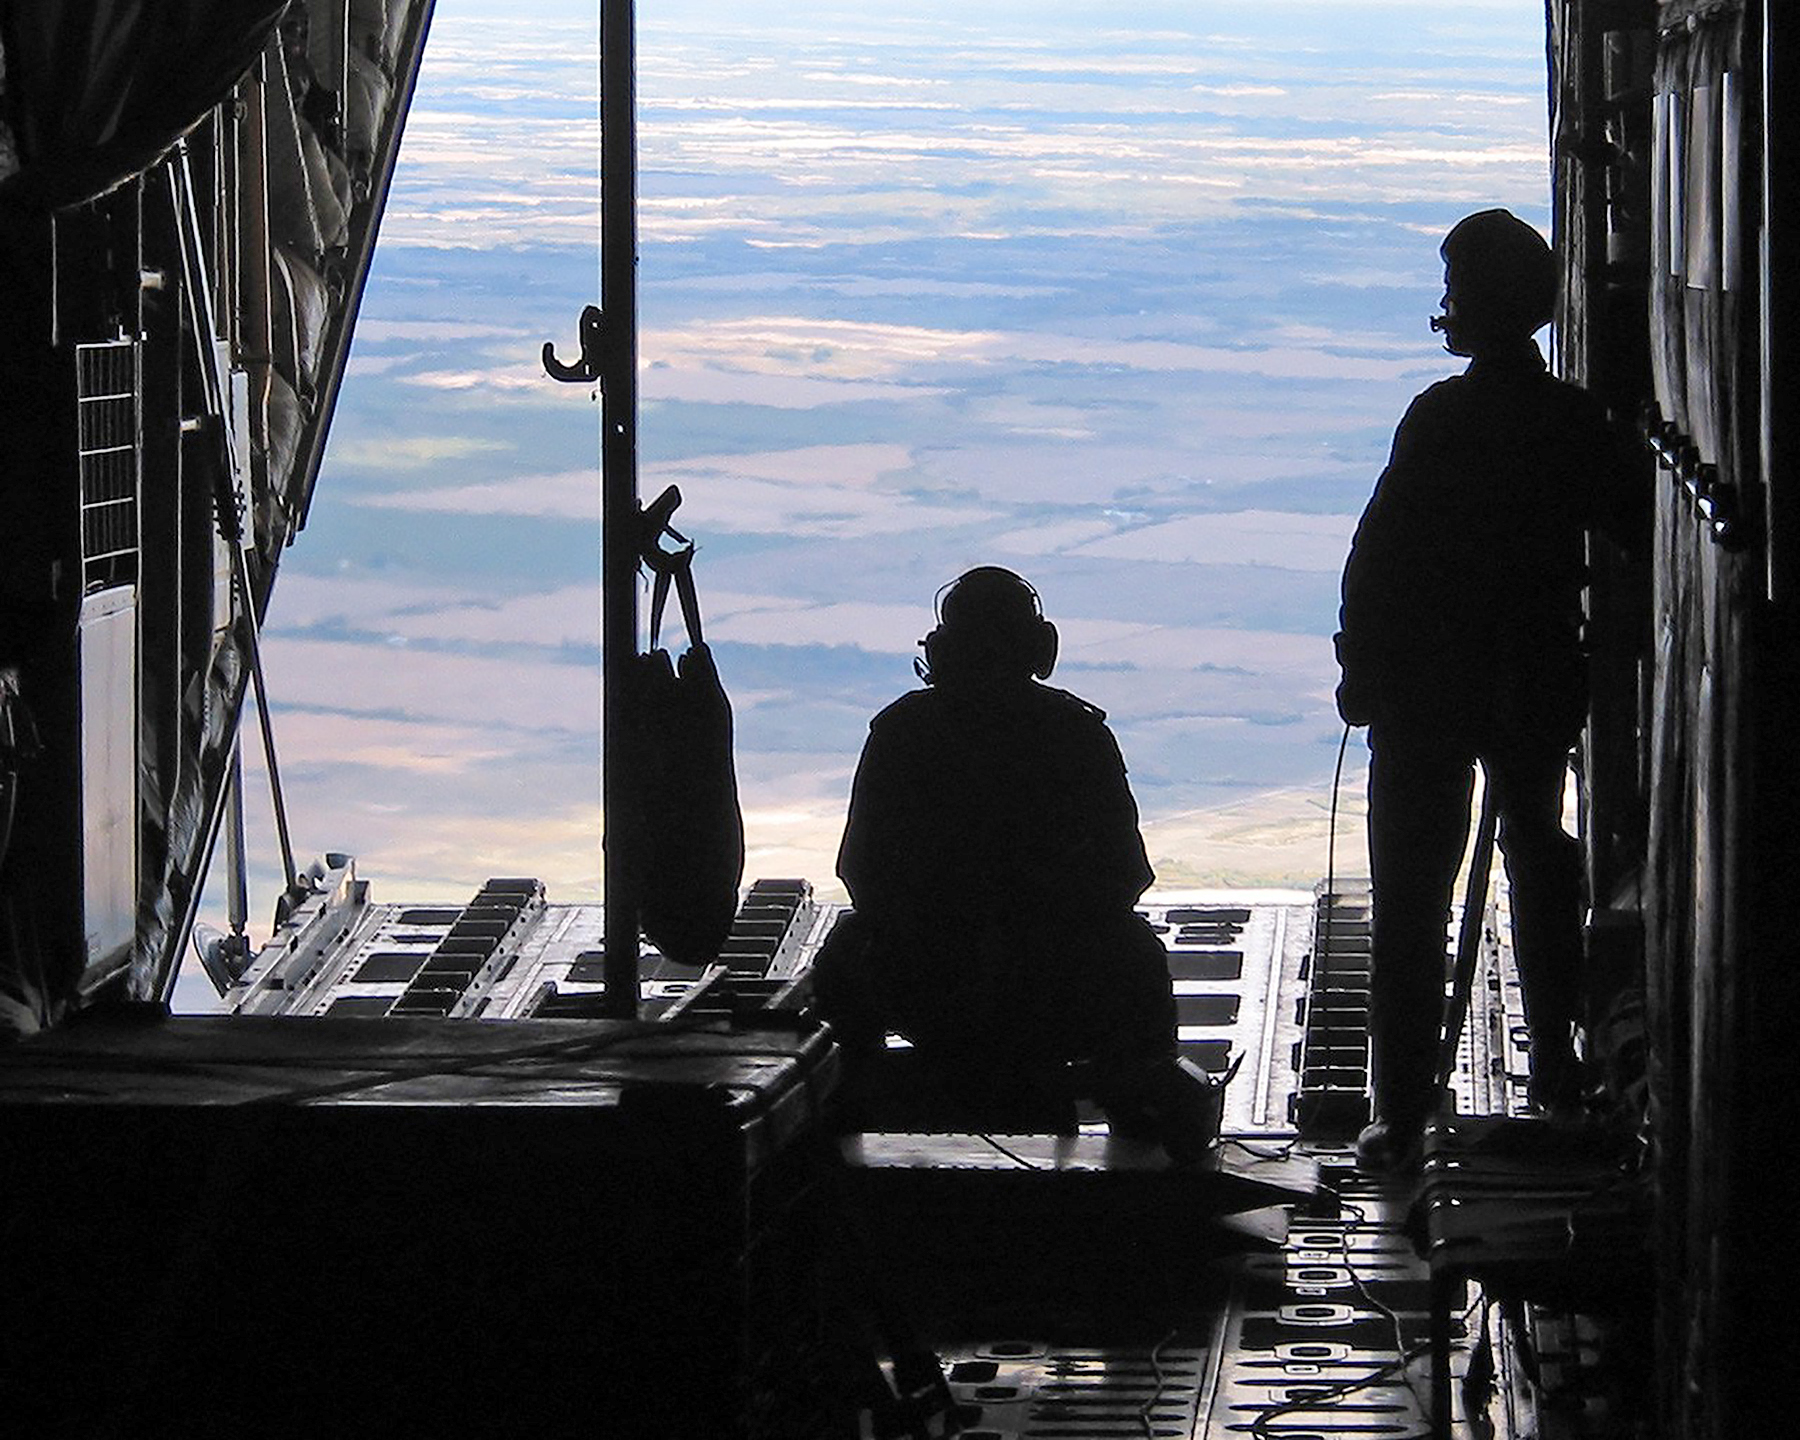 During a CC-130H Hercules test flight in Abbotsford, British Columbia, in 2003, Master Warrant Officer Laurie Moore (standing) observes the amount of time it takes for the cargo door and ramp to open and then to close, to ensure that both actions take place within allowable time limits, while a flight engineer serves as the safety person. PHOTO: DND